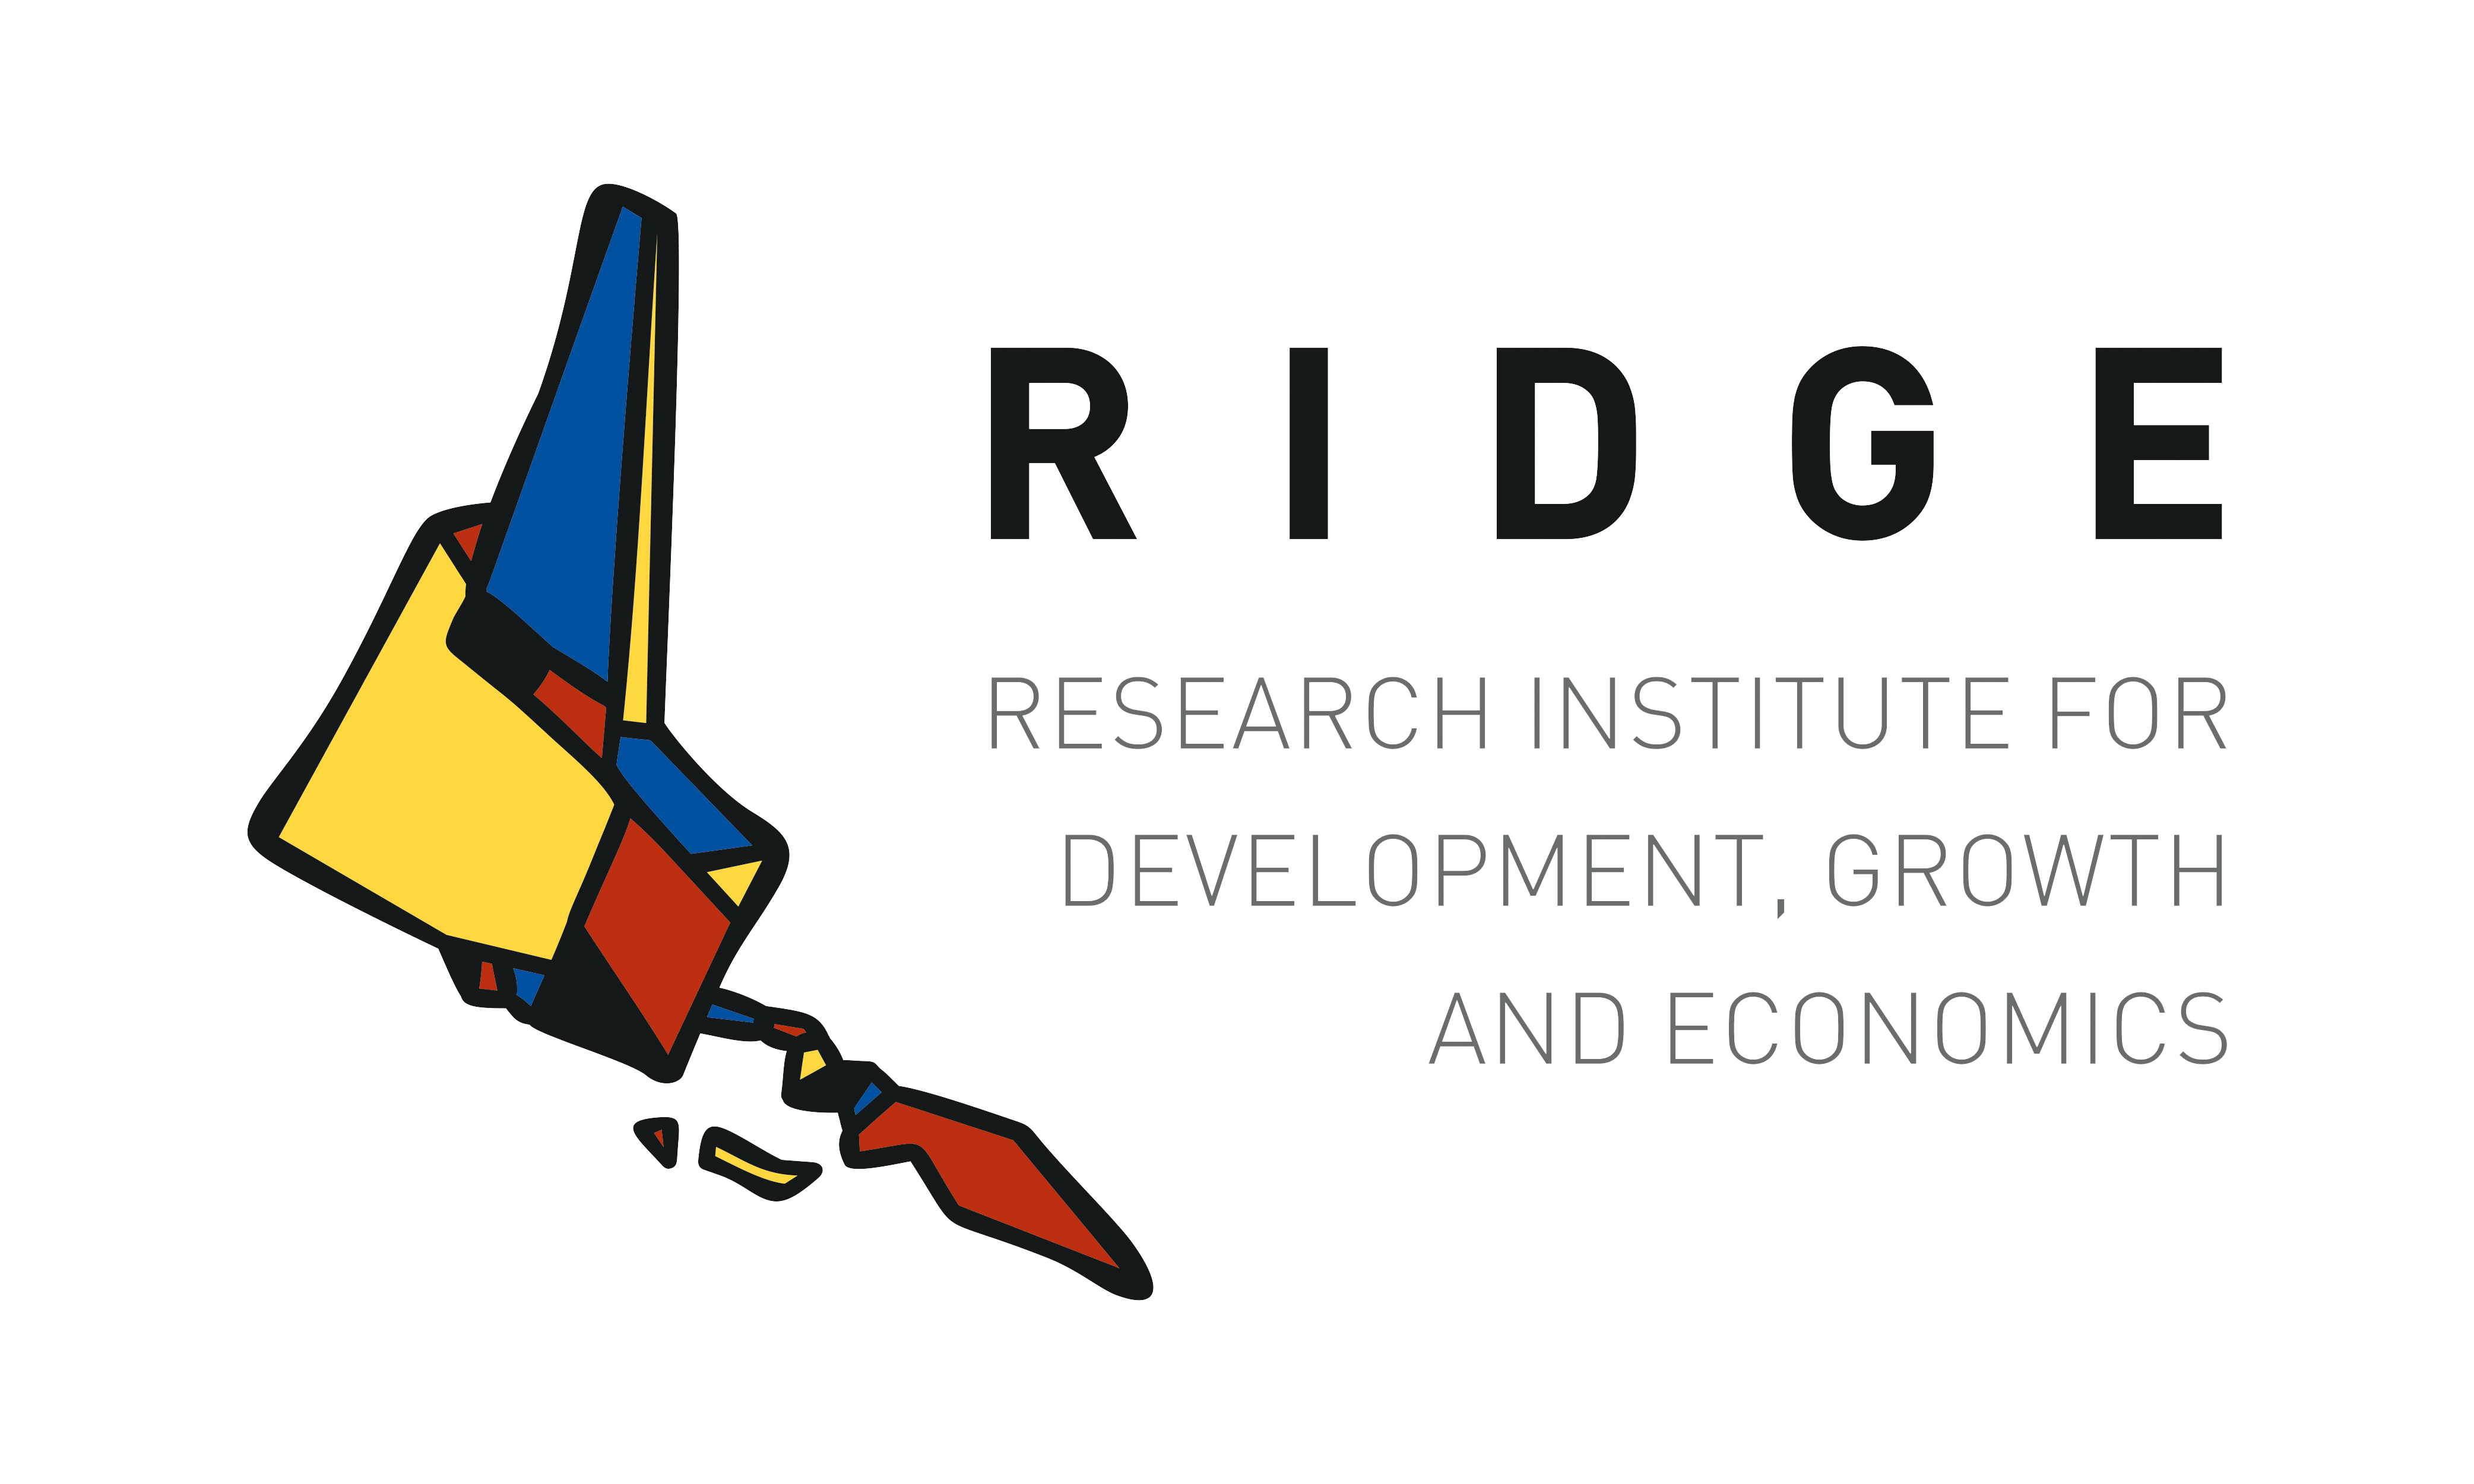 Research Institute for Development, Growth and Economics